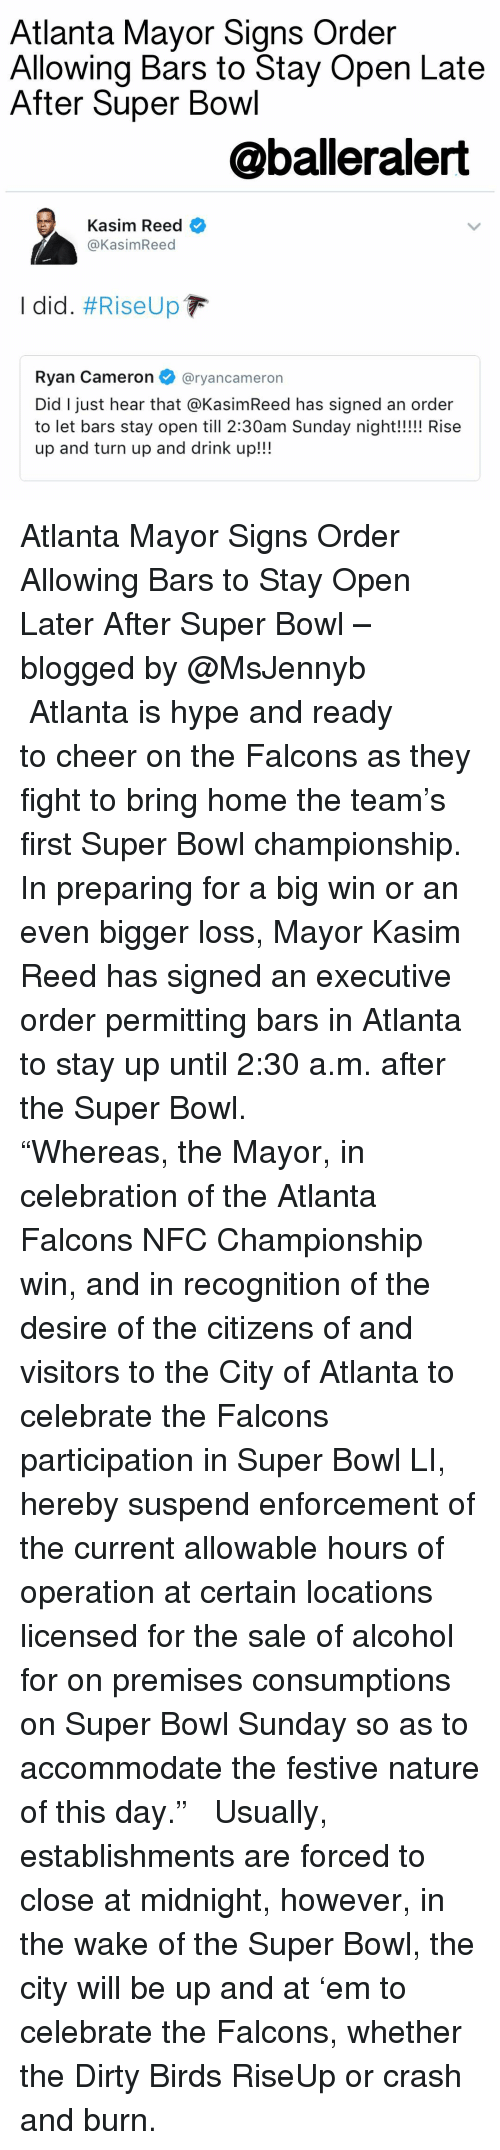 "super bowl sunday: Atlanta Mayor Signs Order  Allowing Bars to Stay Open Late  After Super Bowl  @balleralert  Kasim Reed  Kasim Reed  I did. #Rise Up  F  Ryan Cameron  @ryan cameron  Did I just hear that aKasimReed has signed an order  to let bars stay open till 2:30am Sunday night!!!!! Rise  up and turn up and drink up!!! Atlanta Mayor Signs Order Allowing Bars to Stay Open Later After Super Bowl – blogged by @MsJennyb ⠀⠀⠀⠀⠀⠀⠀ ⠀⠀⠀⠀⠀⠀⠀ Atlanta is hype and ready to cheer on the Falcons as they fight to bring home the team's first Super Bowl championship. In preparing for a big win or an even bigger loss, Mayor Kasim Reed has signed an executive order permitting bars in Atlanta to stay up until 2:30 a.m. after the Super Bowl. ⠀⠀⠀⠀⠀⠀⠀ ⠀⠀⠀⠀⠀⠀⠀ ""Whereas, the Mayor, in celebration of the Atlanta Falcons NFC Championship win, and in recognition of the desire of the citizens of and visitors to the City of Atlanta to celebrate the Falcons participation in Super Bowl LI, hereby suspend enforcement of the current allowable hours of operation at certain locations licensed for the sale of alcohol for on premises consumptions on Super Bowl Sunday so as to accommodate the festive nature of this day."" ⠀⠀⠀⠀⠀⠀⠀ ⠀⠀⠀⠀⠀⠀⠀ Usually, establishments are forced to close at midnight, however, in the wake of the Super Bowl, the city will be up and at 'em to celebrate the Falcons, whether the Dirty Birds RiseUp or crash and burn."